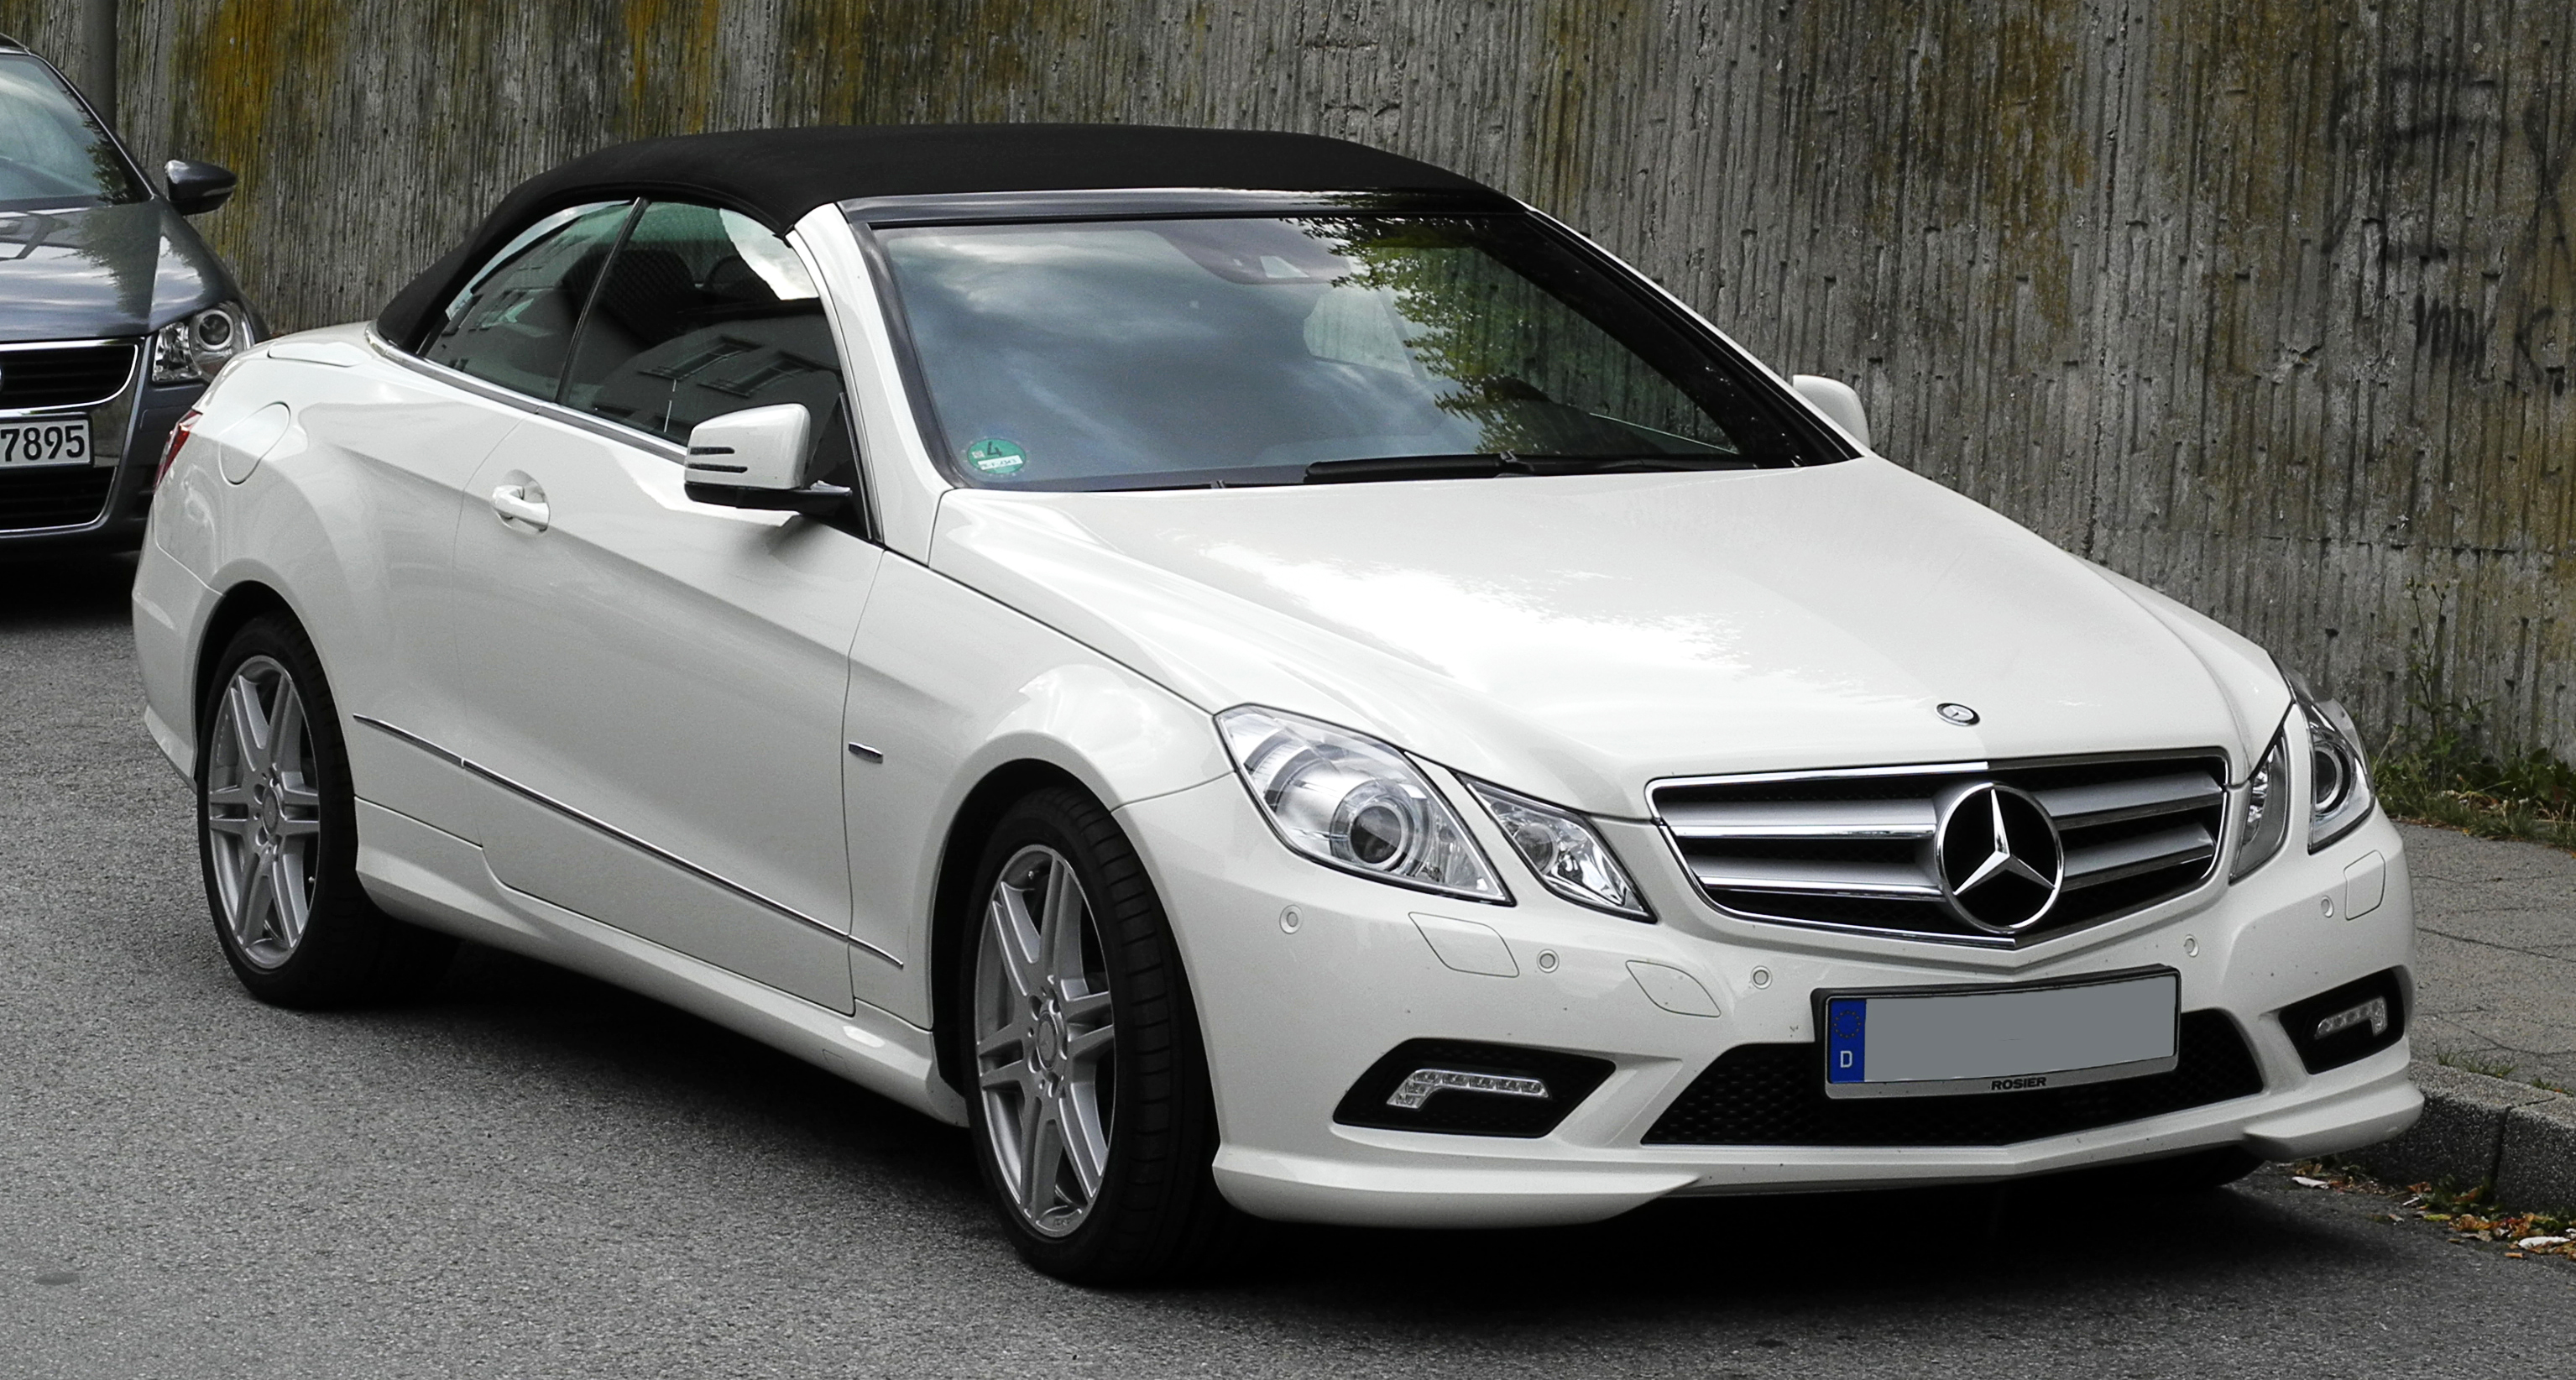 file mercedes benz e 250 cgi blueefficiency cabriolet sport paket amg a 207 frontansicht 4. Black Bedroom Furniture Sets. Home Design Ideas